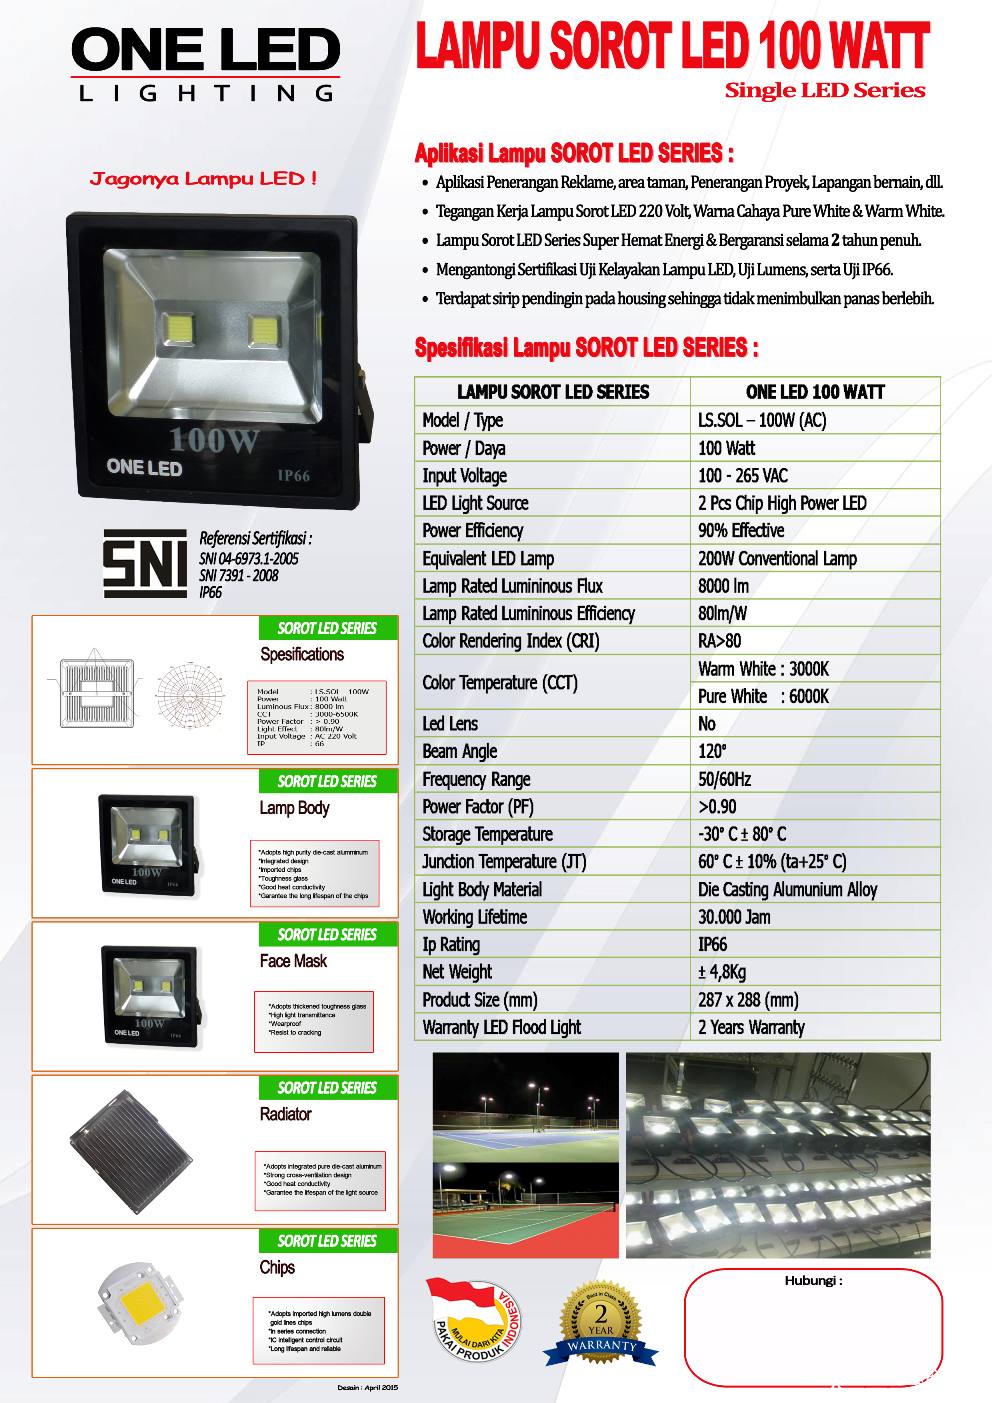 Lampu Sorot 100watt One Led Produk Ges Indonesia 100w Light Source 2 Pcs High Power Color Pure White Warm Protection Grade Ip66 Life Span 50000h Weight 480 Kg